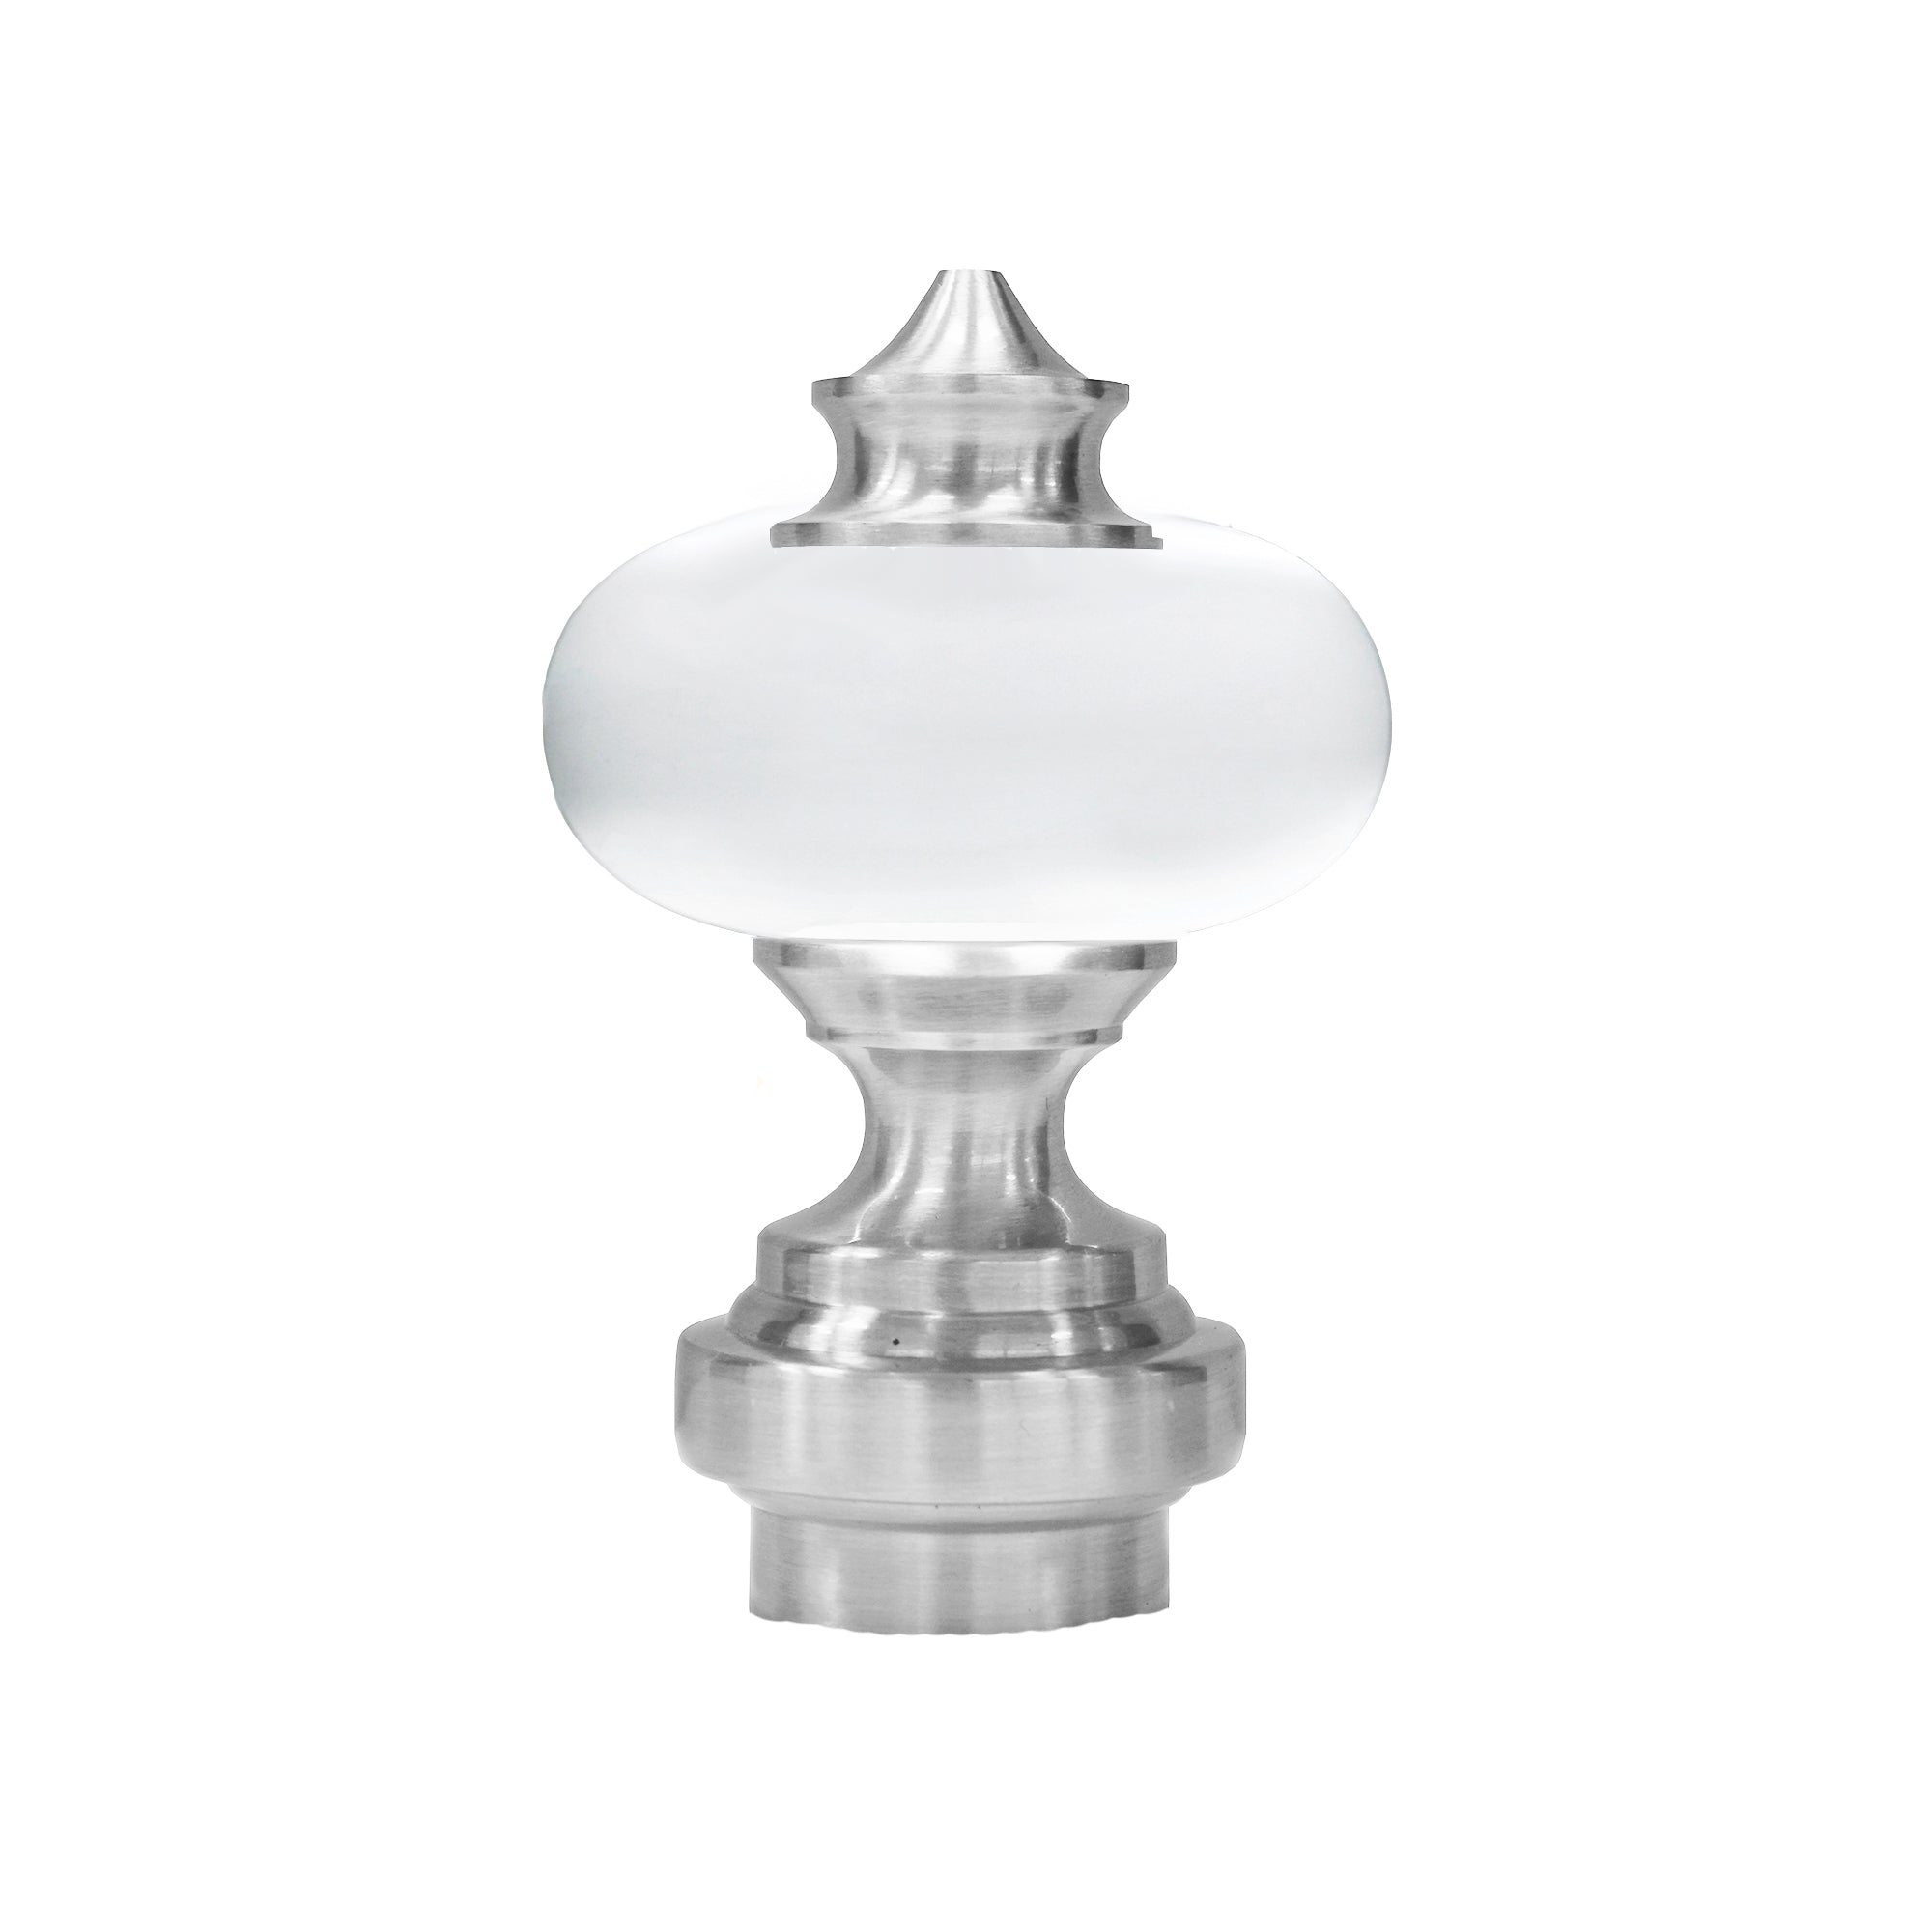 Acrylic/Metal Finials - Antique Pewter